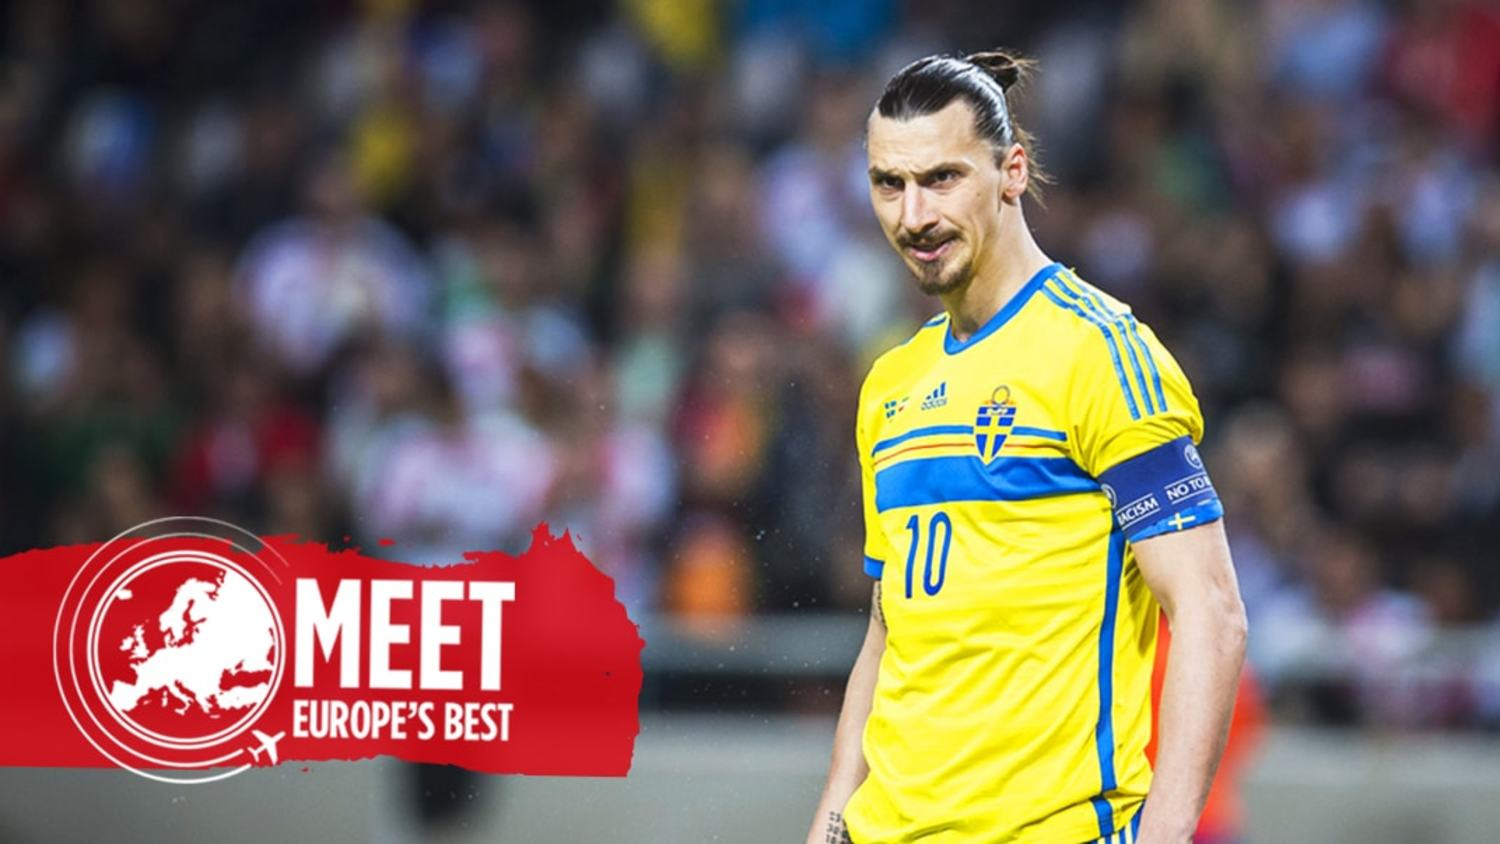 Sneaking In To Zlatan's Hotel | Meet Europe's Best